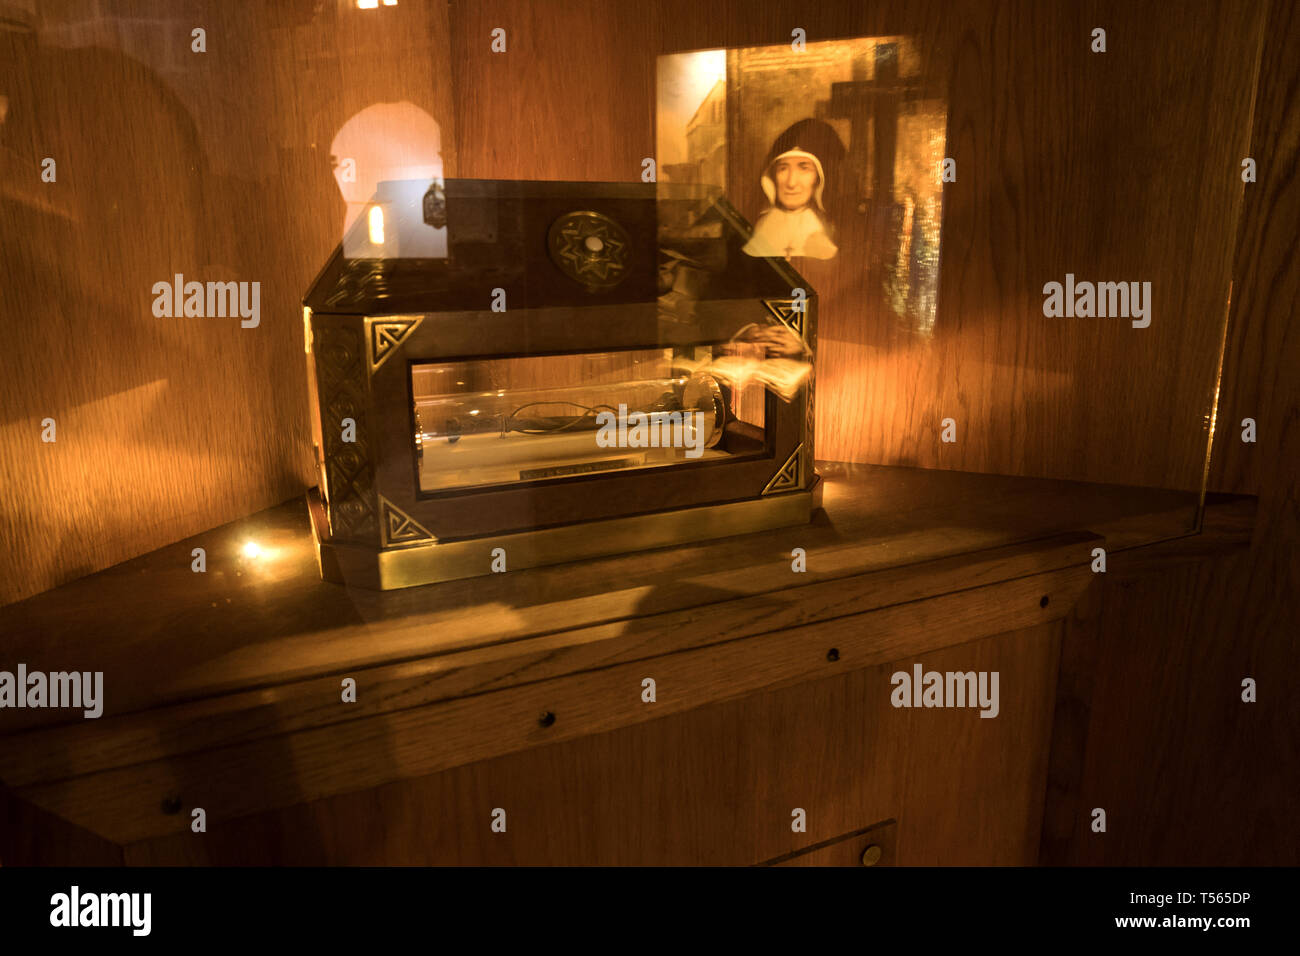 Barfleur, France - August 29, 2018: Relic of St. Mary Magdalene Postel in the Church of St. Nicholas in Barfleur. Normandy, France - Stock Image